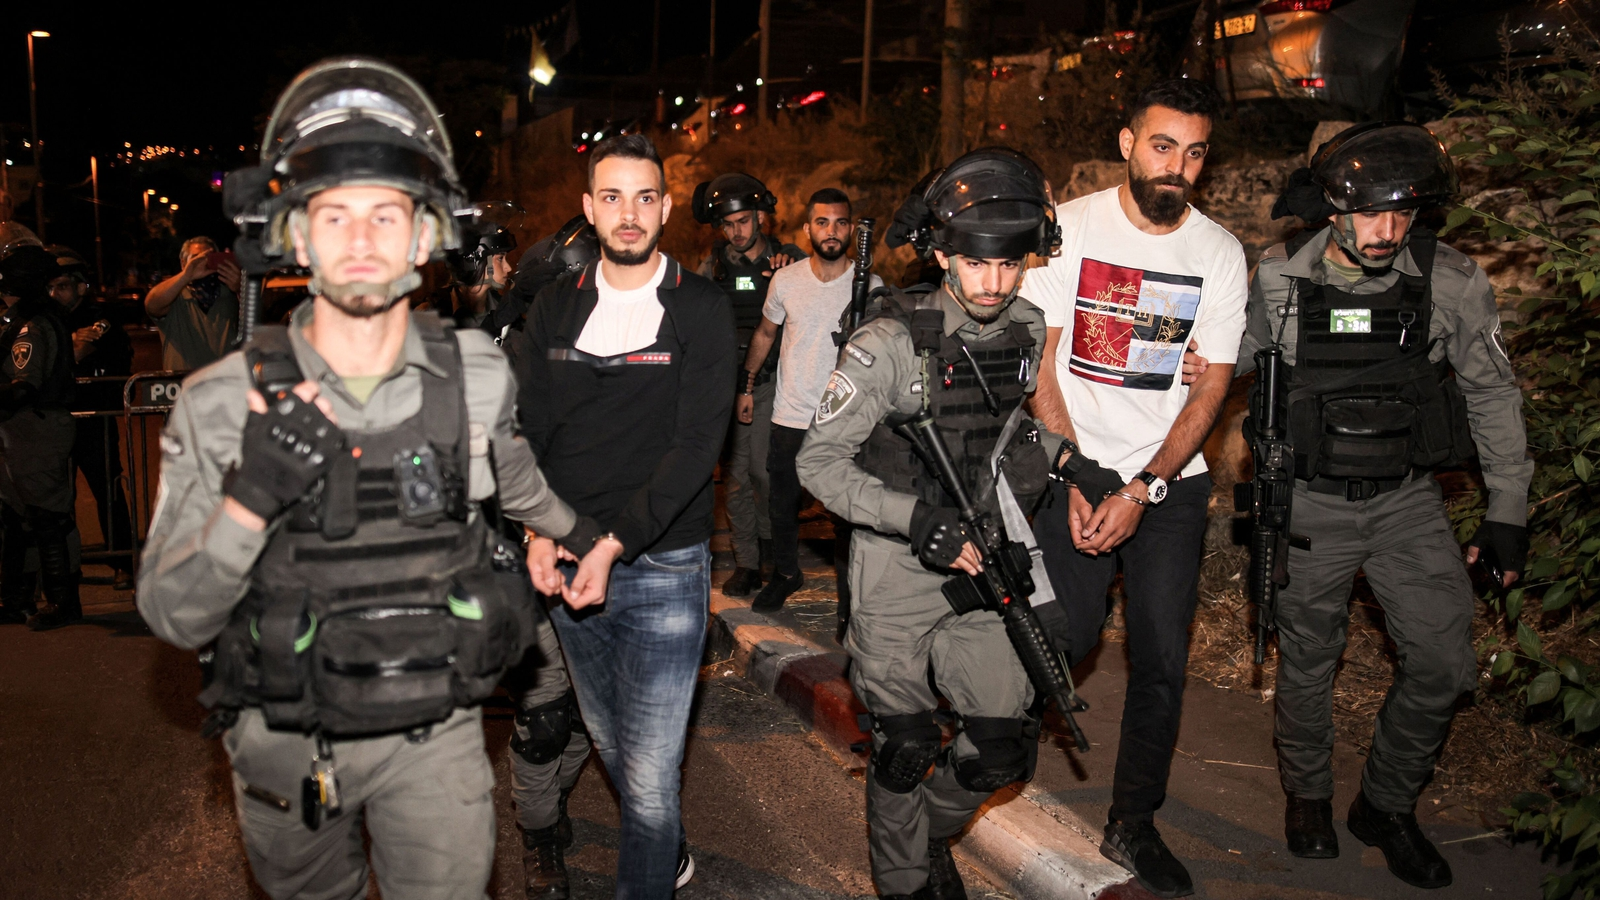 More clashes over threat to evict Palestinian families